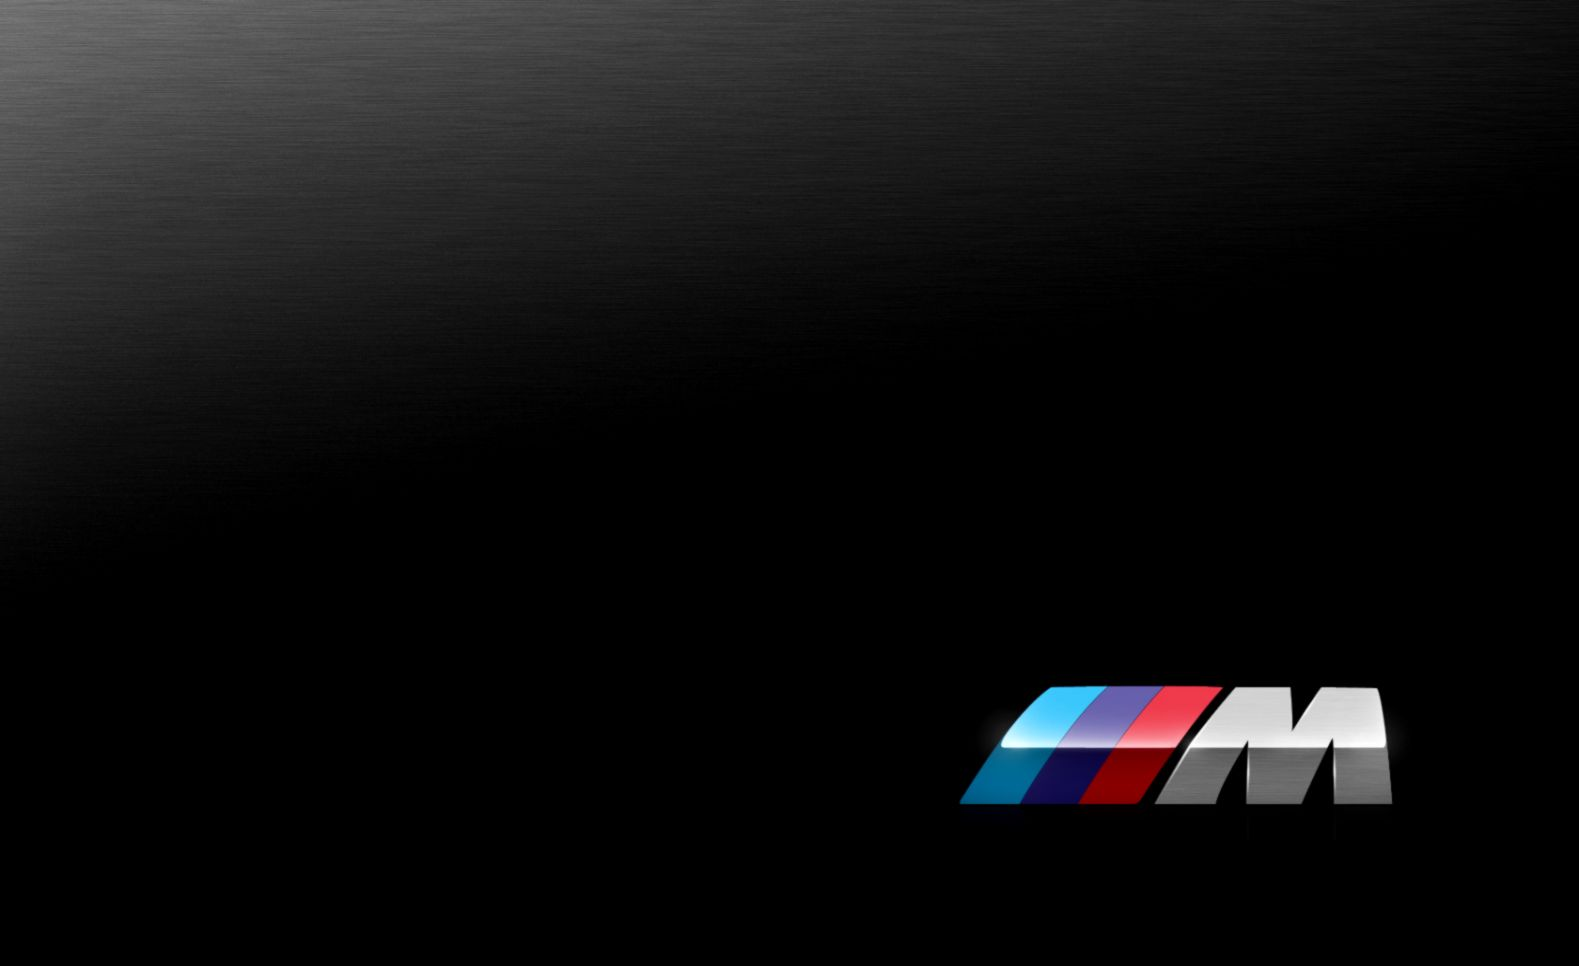 Bmw M Wallpaper Wallpapers Style